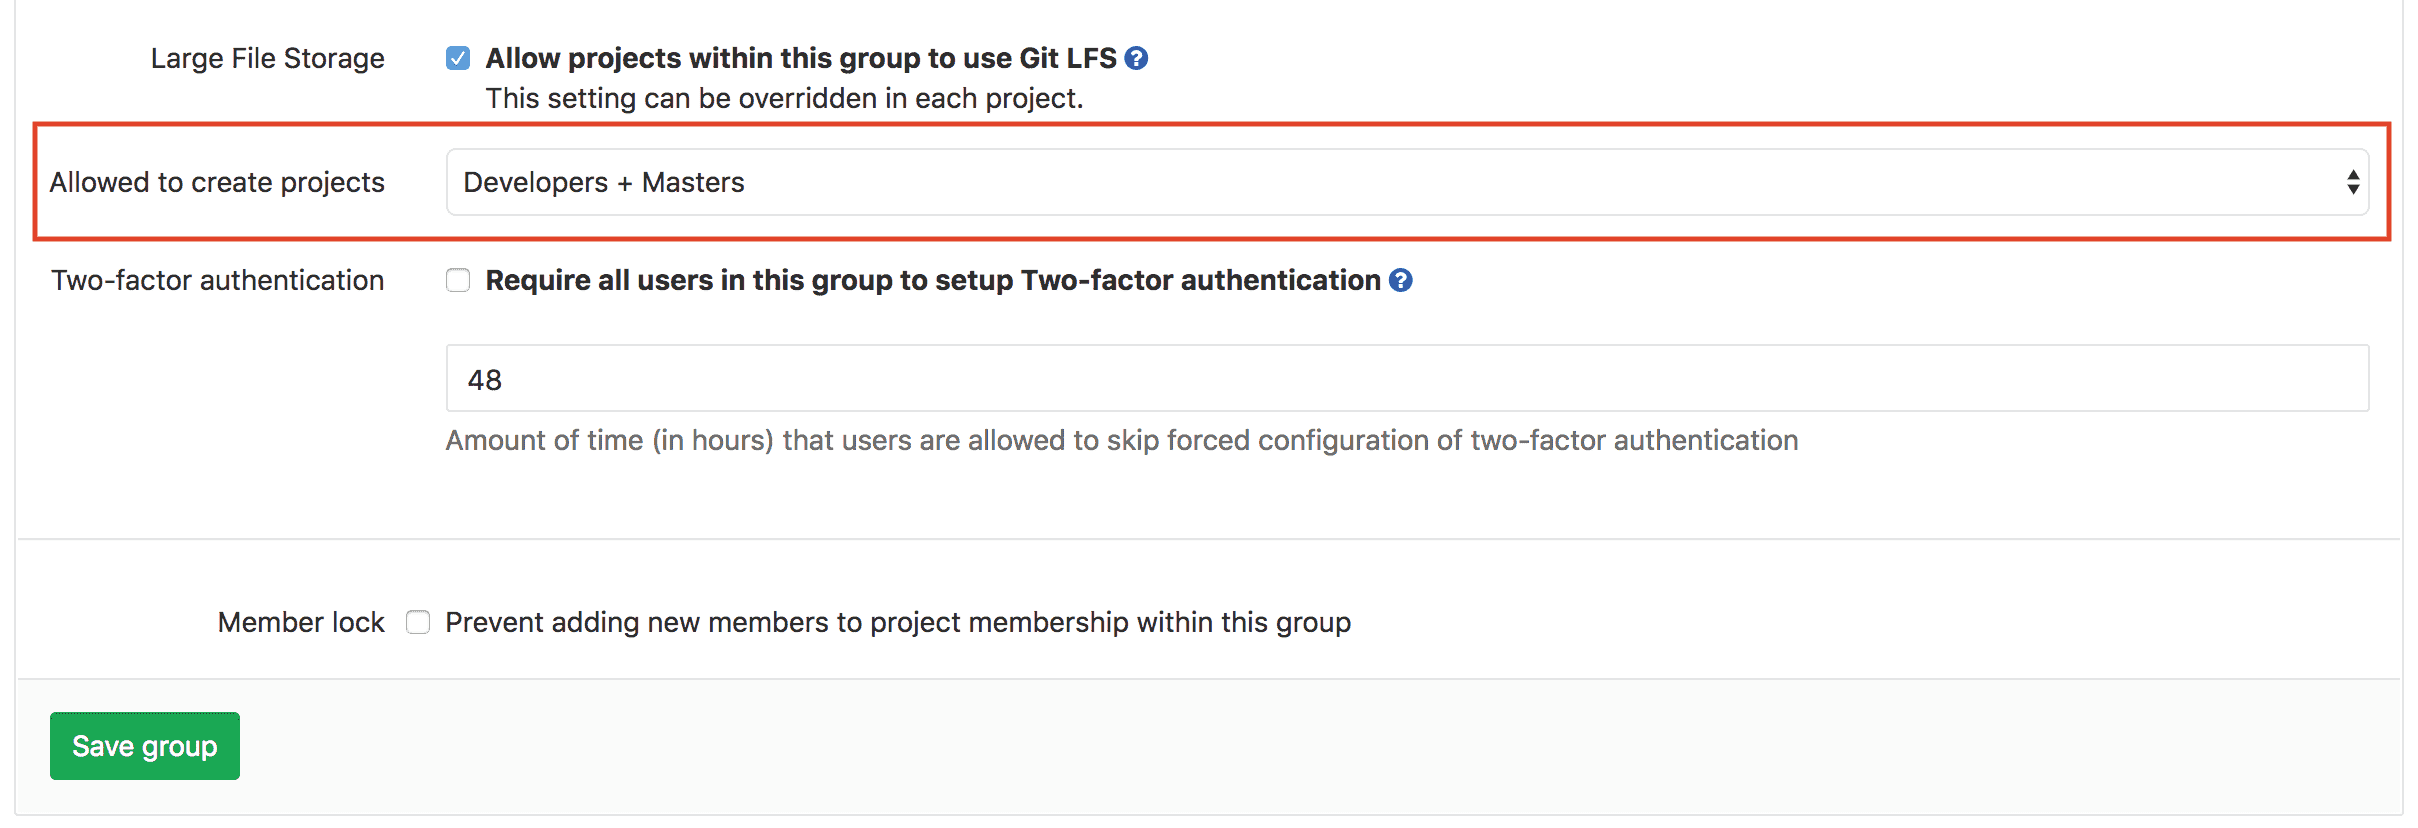 Allow developers to create projects in groups